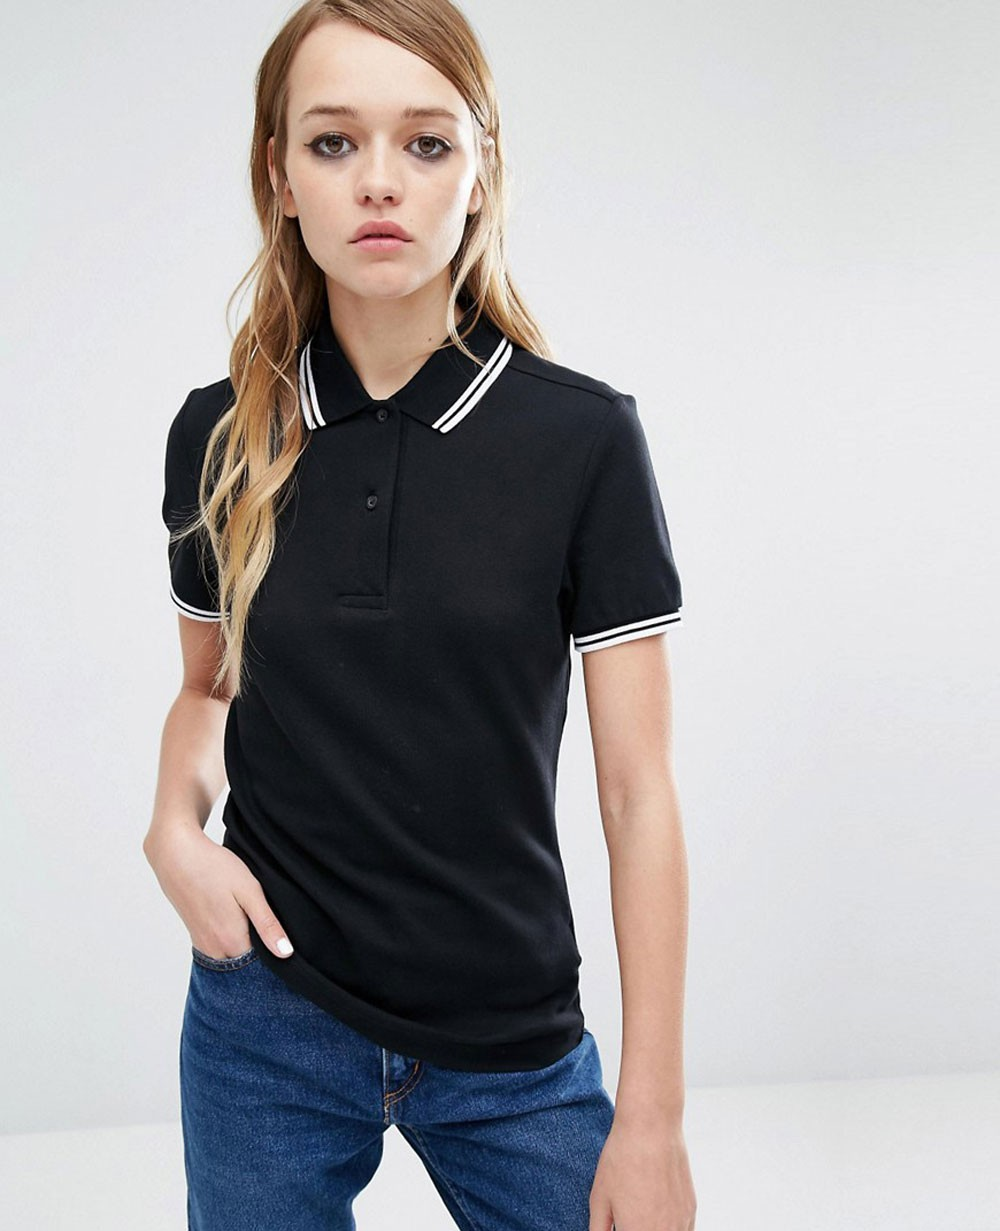 Twin Tipped Women Black Polo Shirt